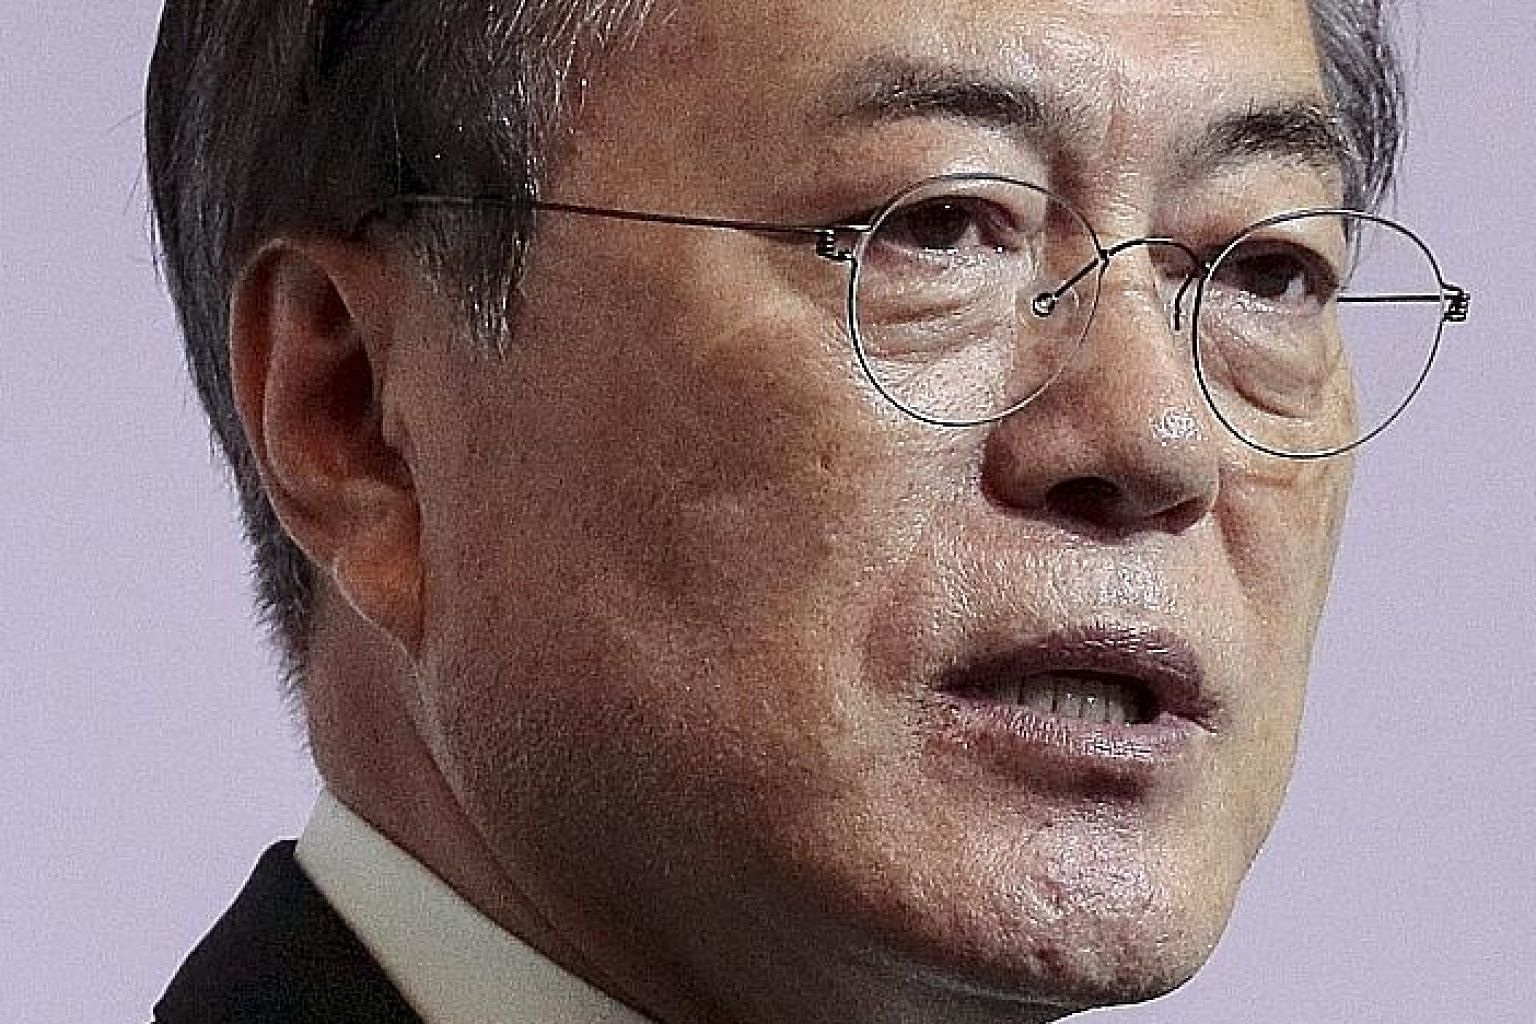 South Korean President Moon Jae-in has faced criticisms since the US-North Korea summit in Hanoi collapsed without a deal.